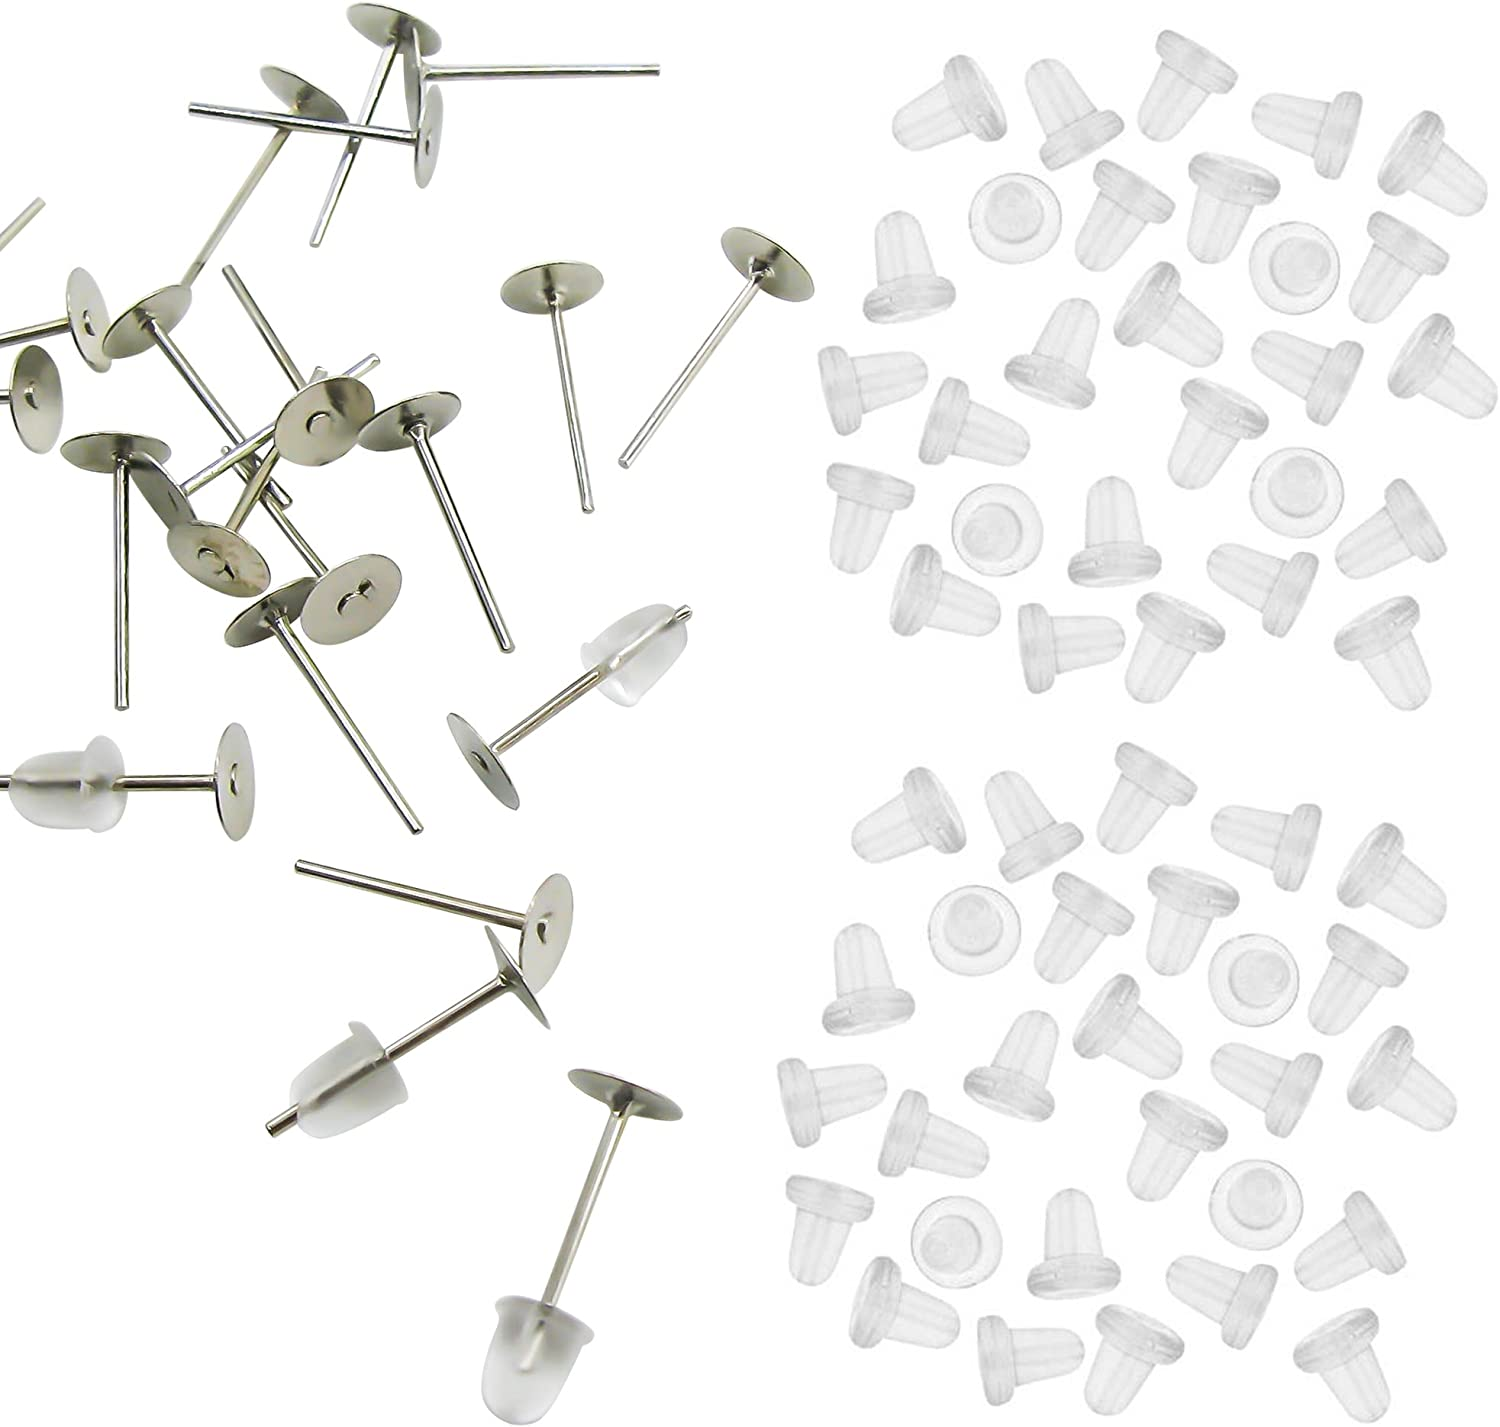 Pack of 600pcs Earrings Pin Stud Findings DIY Back Post Pad Blank Retail